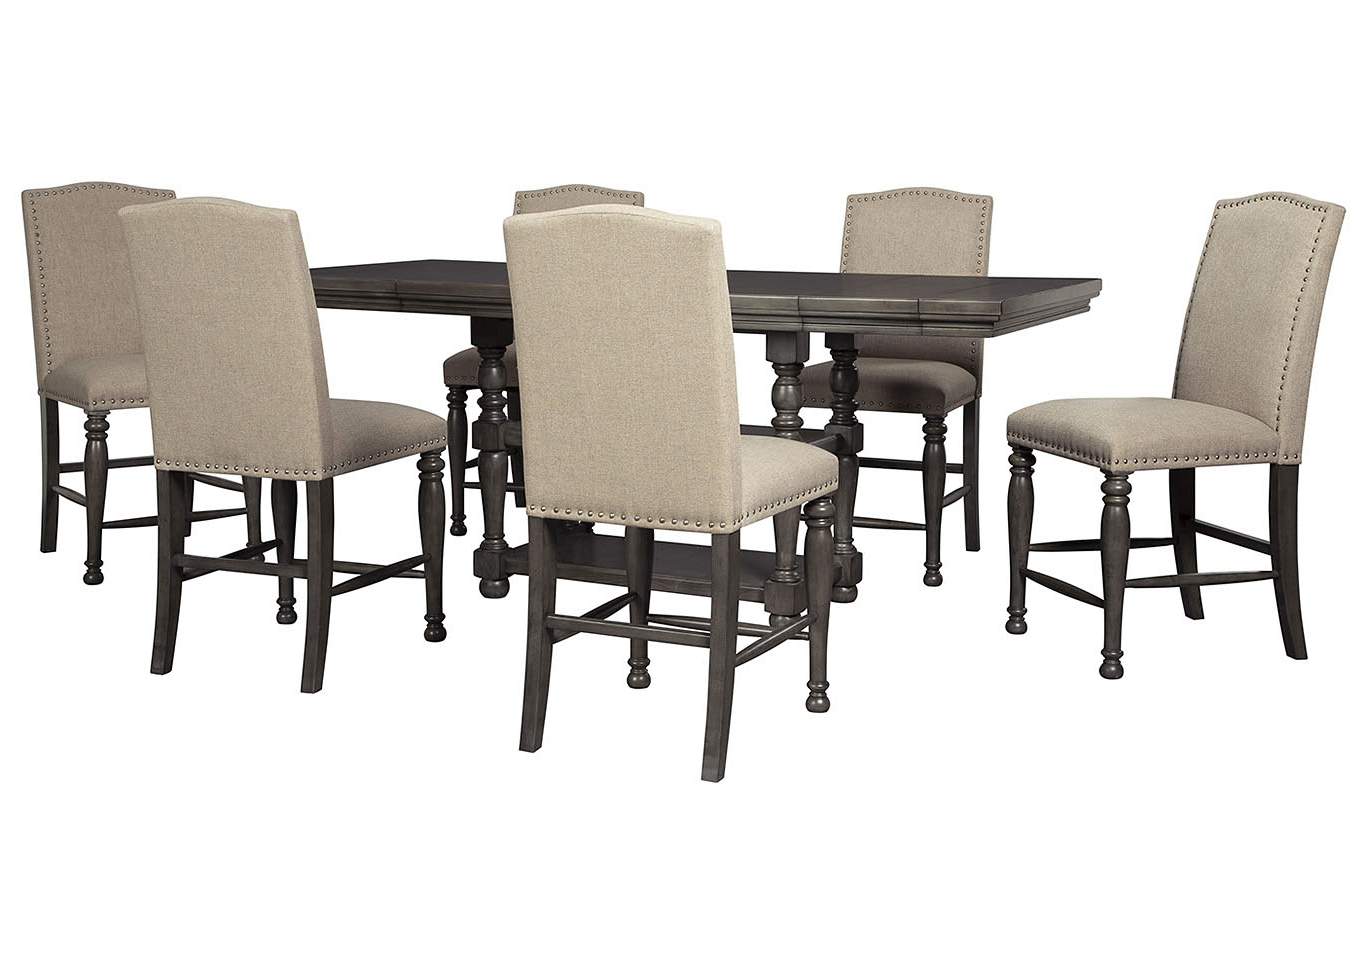 Berrios 3 Piece Counter Height Dining Sets With Regard To 2017 Ashley Furniture Homestore – Independently Owned And Operated (Gallery 5 of 20)